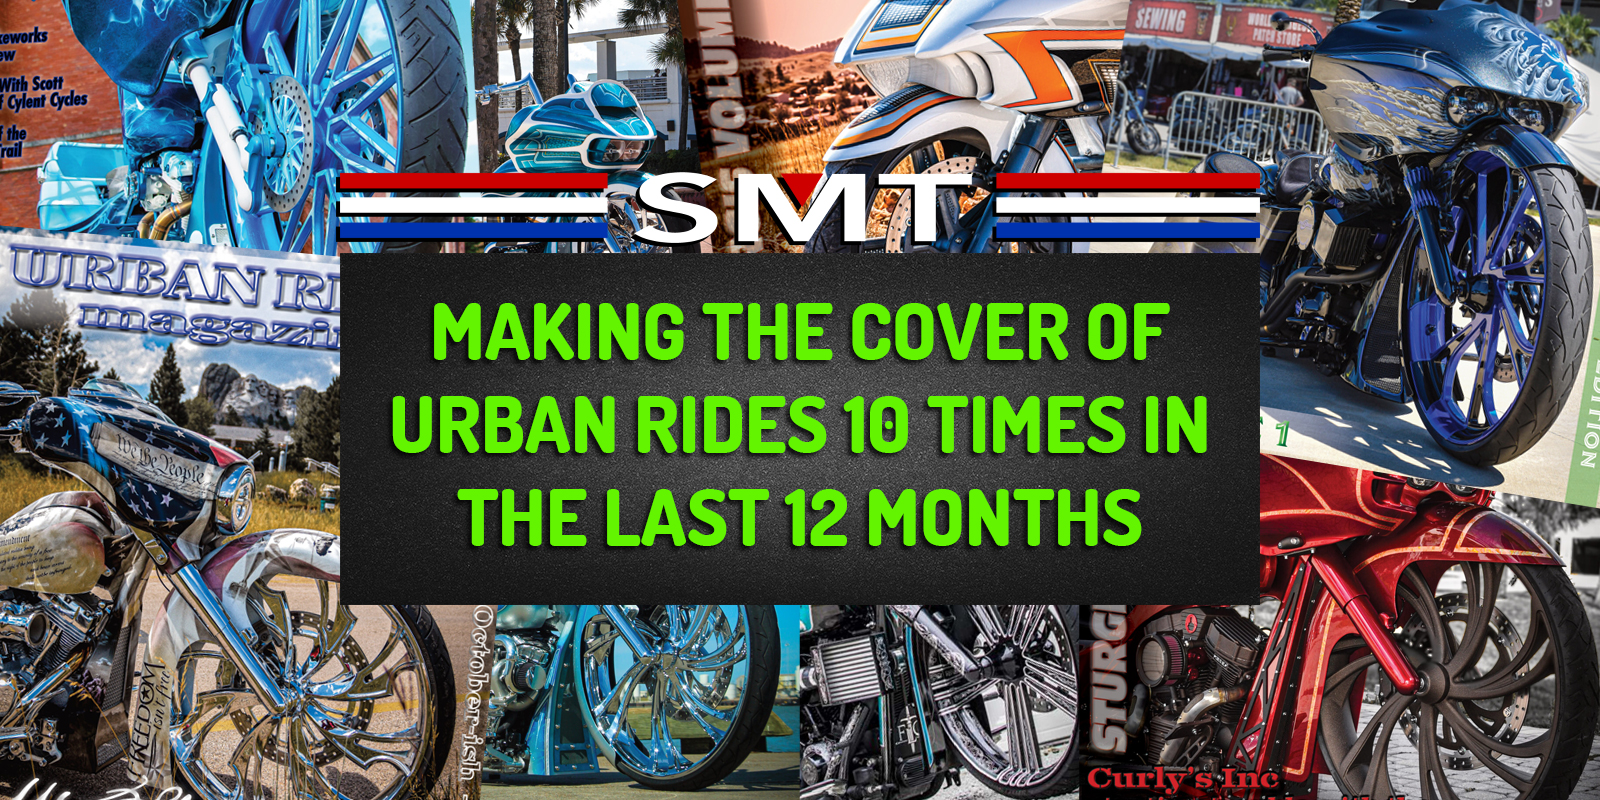 SMT Makes The Cover Of Urban Rides 10 Times In 12-Months